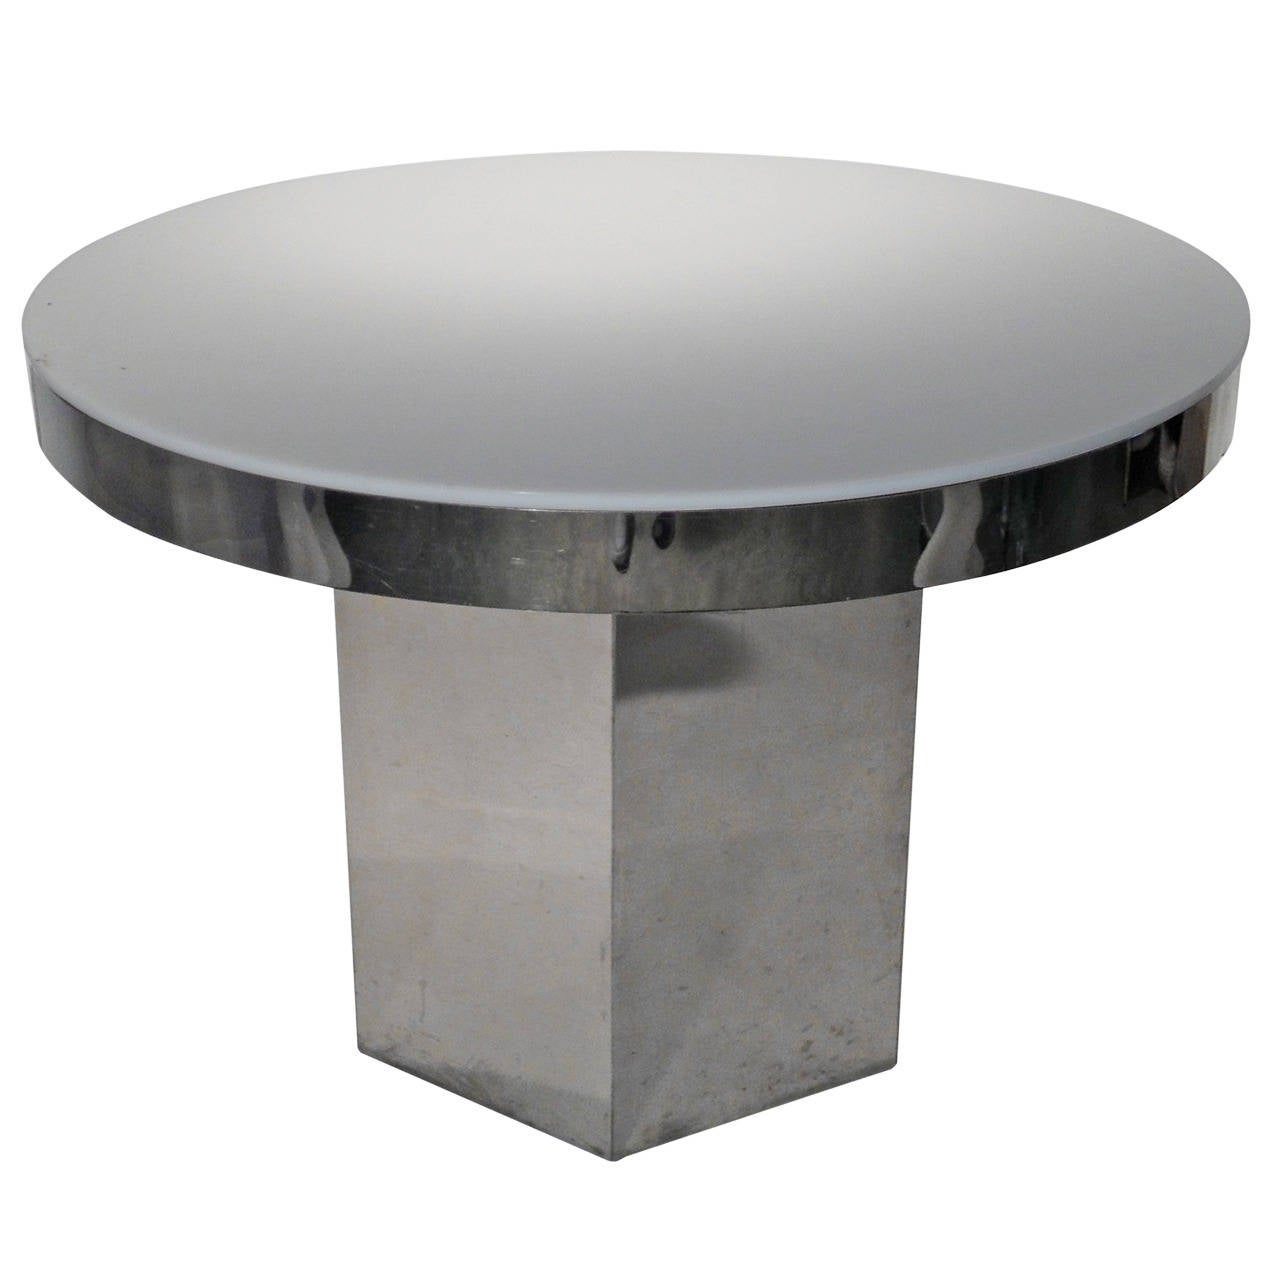 Chrome and lucite table with hexagon base at 1stdibs for Table 52 prices